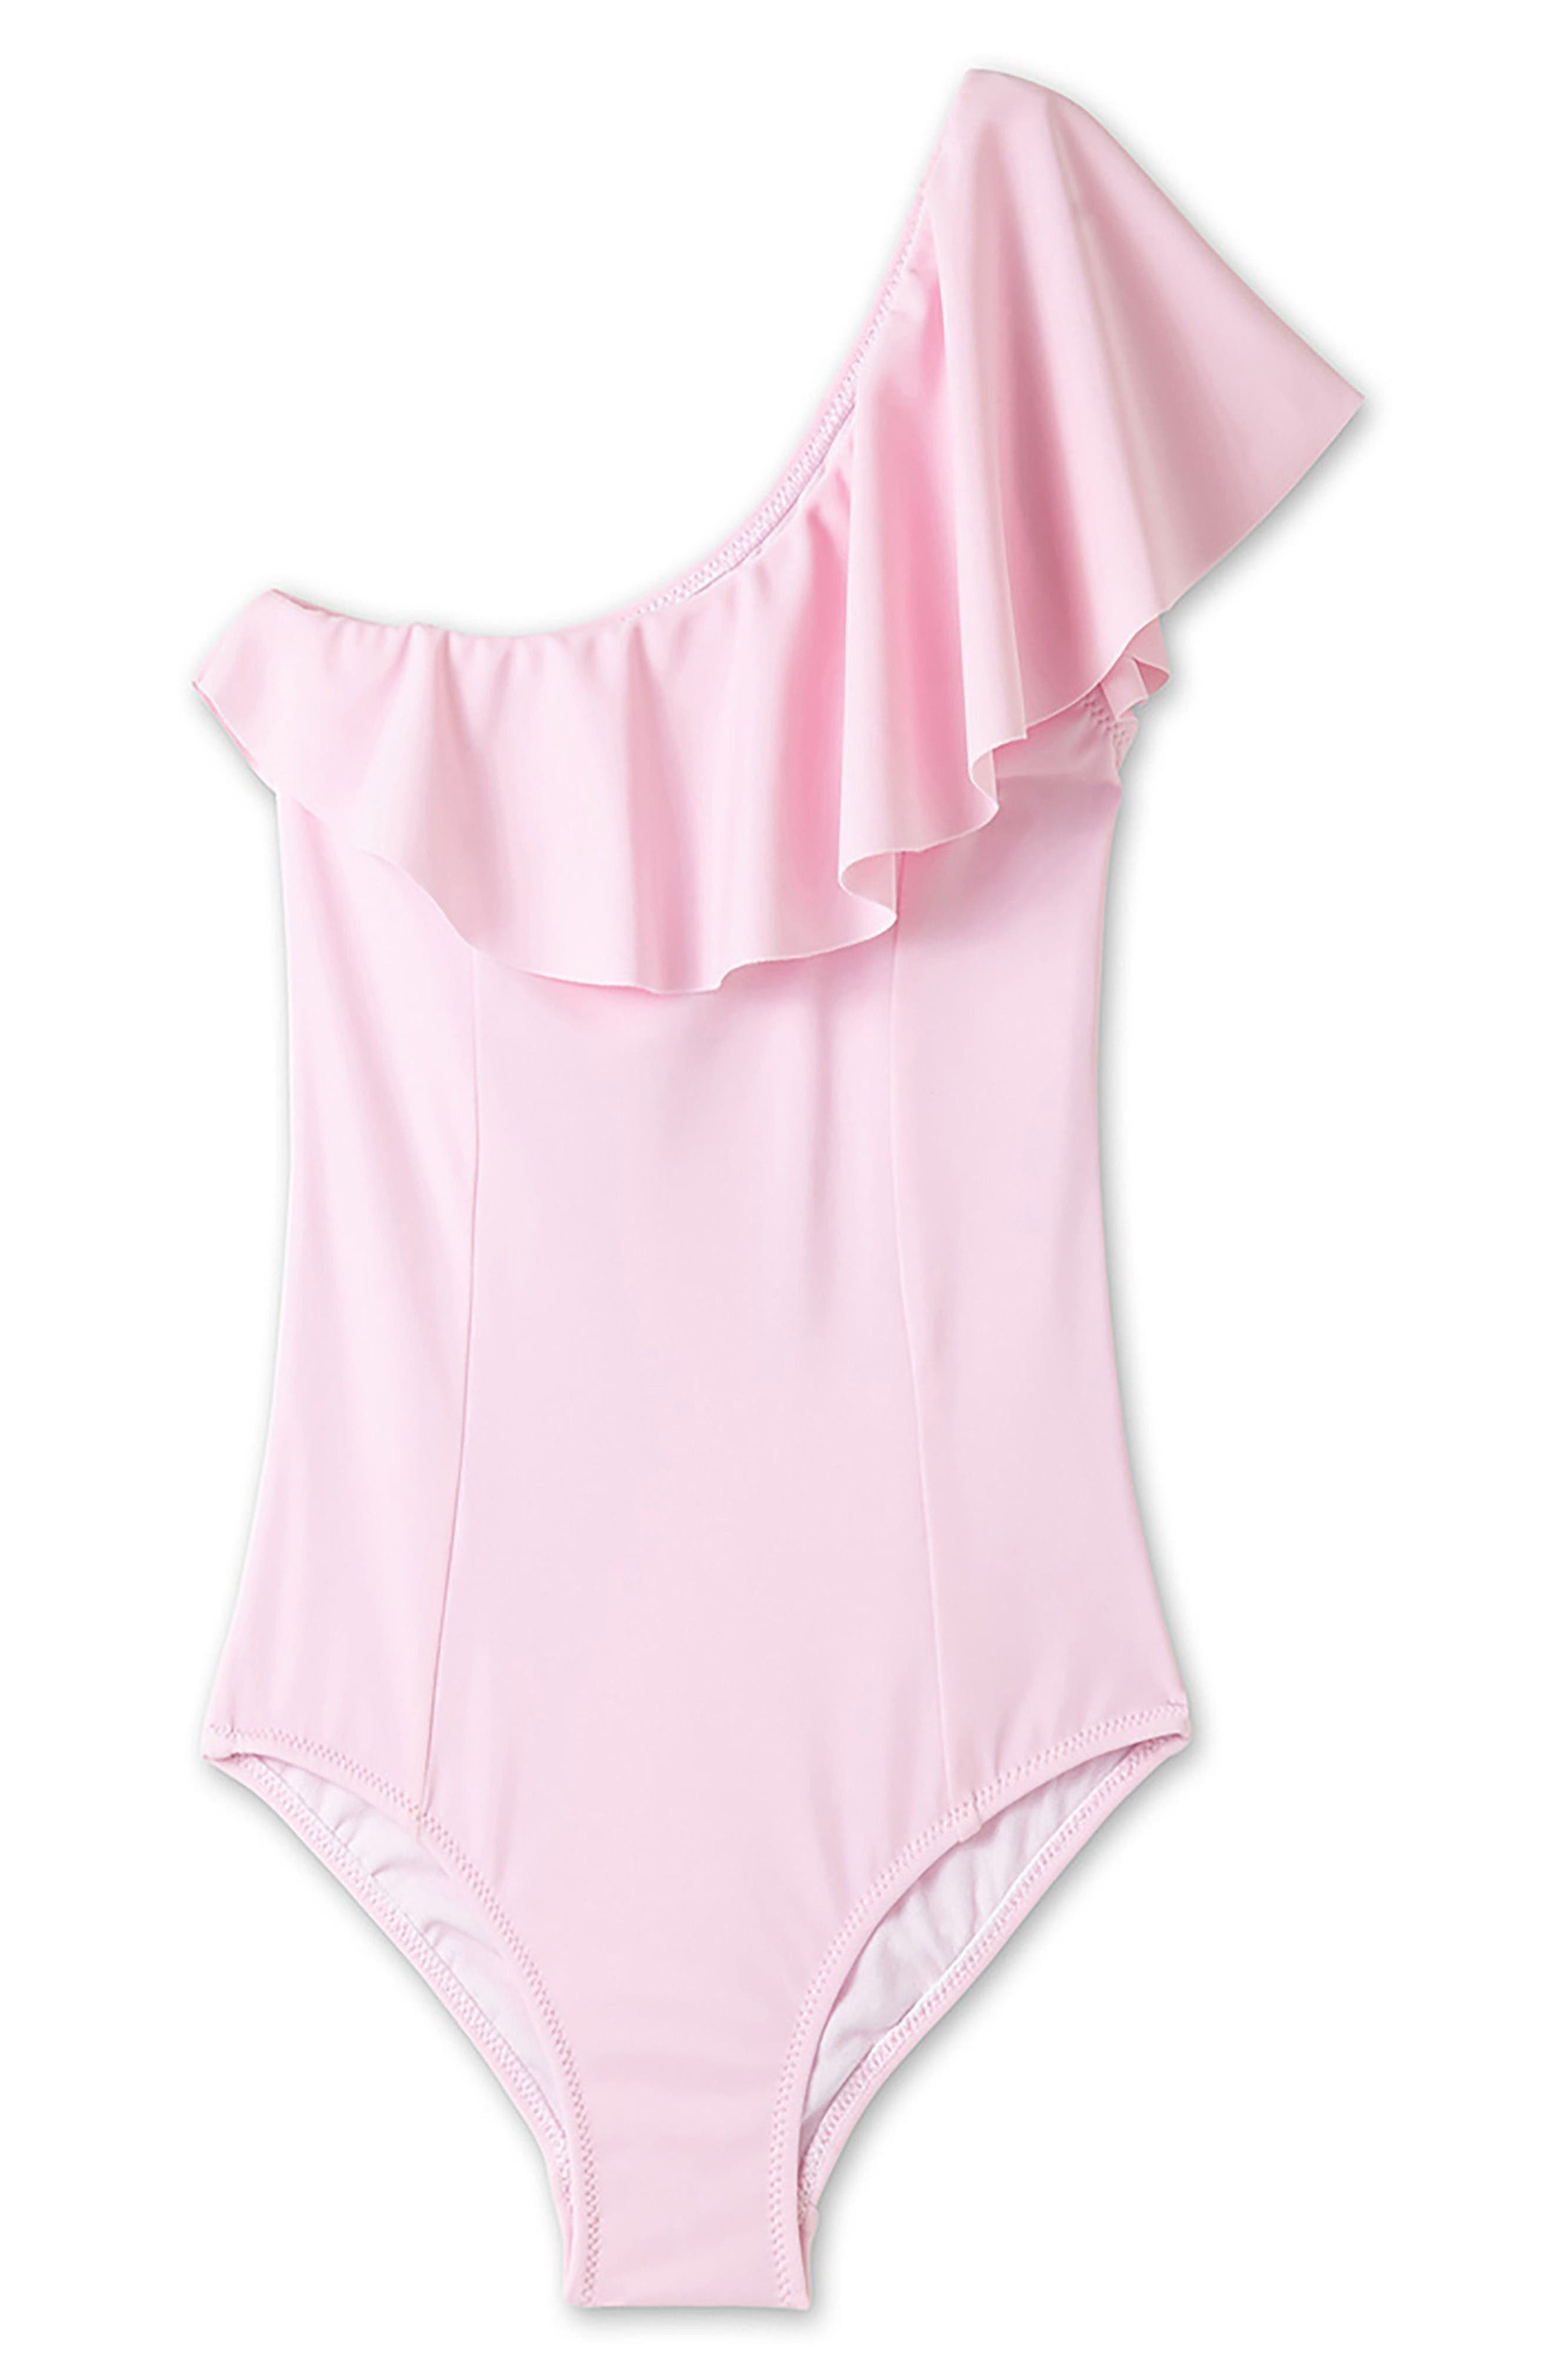 Alternate Image 1 Selected - Stella Cove Ruffle One-Piece Swimsuit (Little Girls & Big Girls)